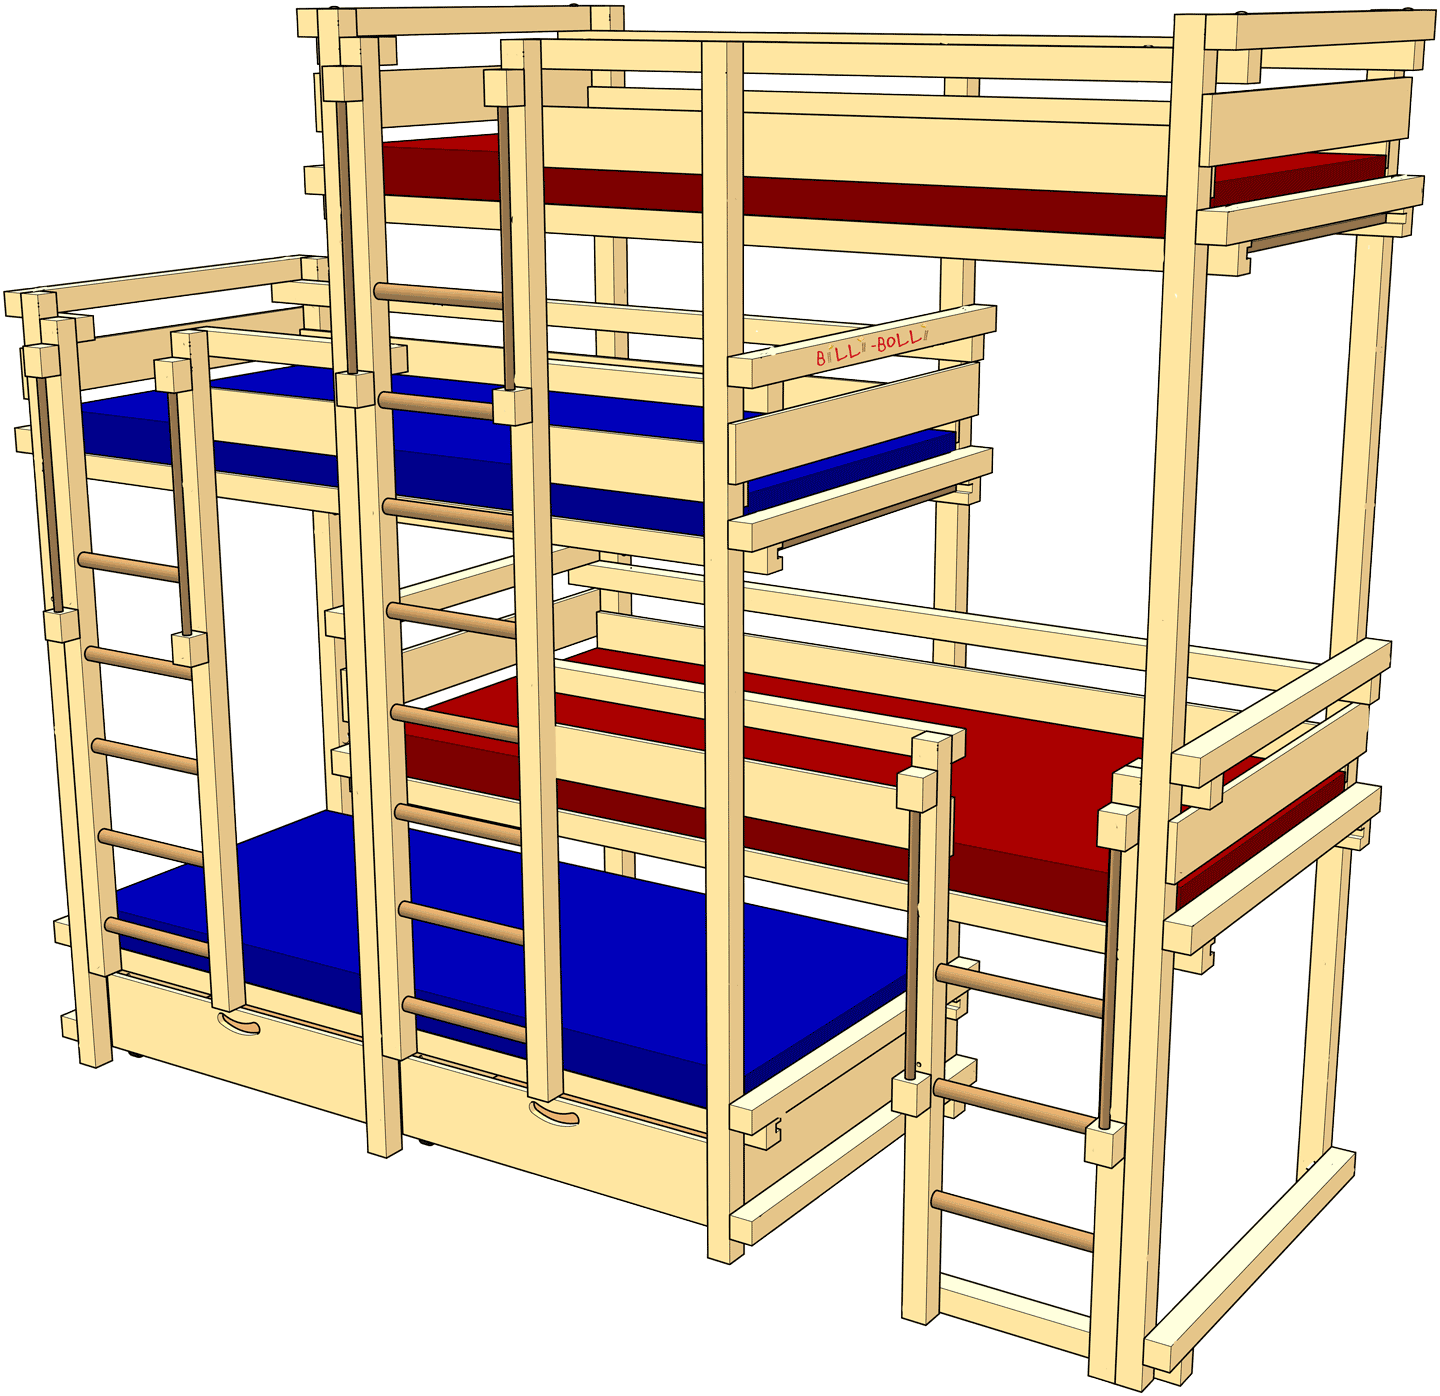 Bunk Bed Laterally Staggered for Four